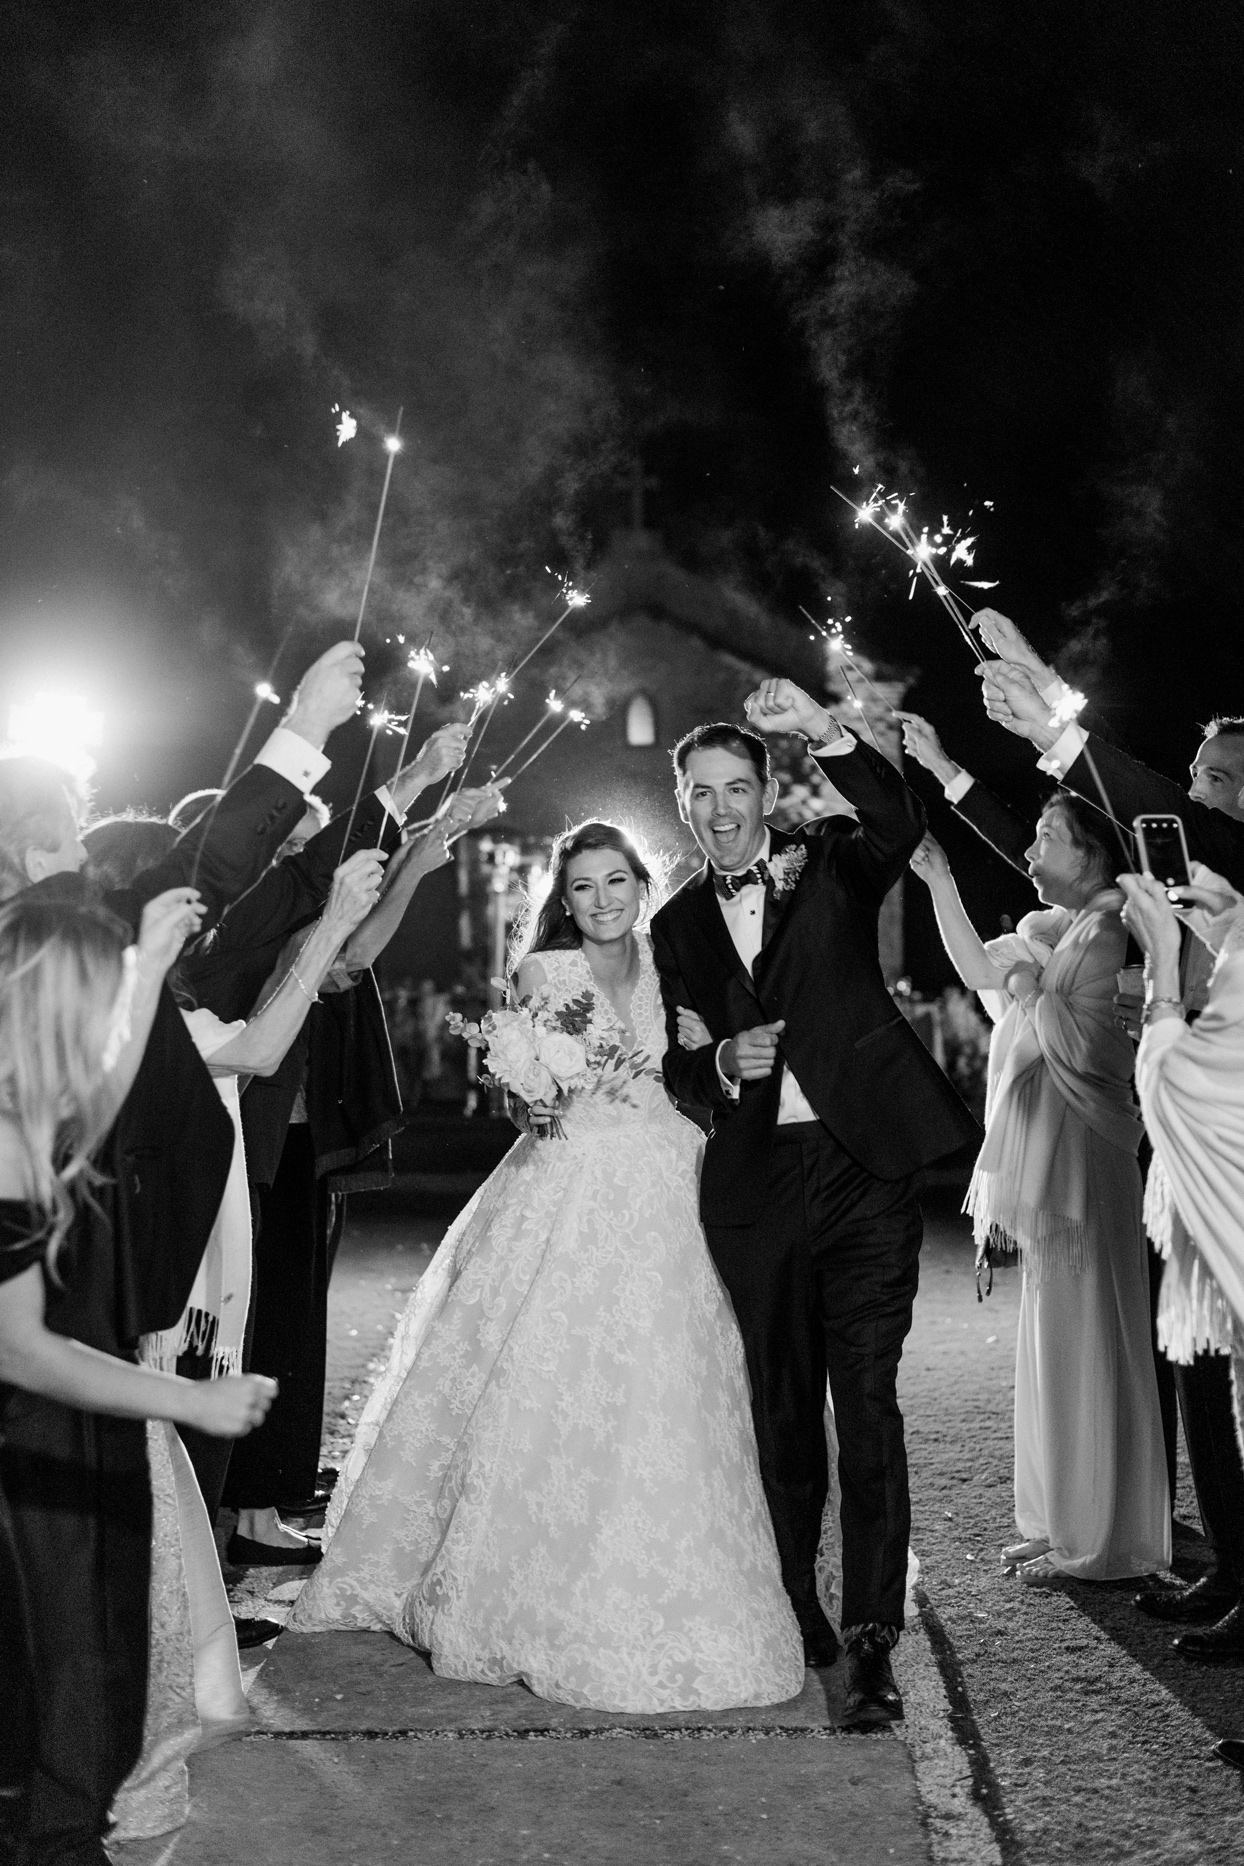 bride and groom leaving reception under sparklers held by guests